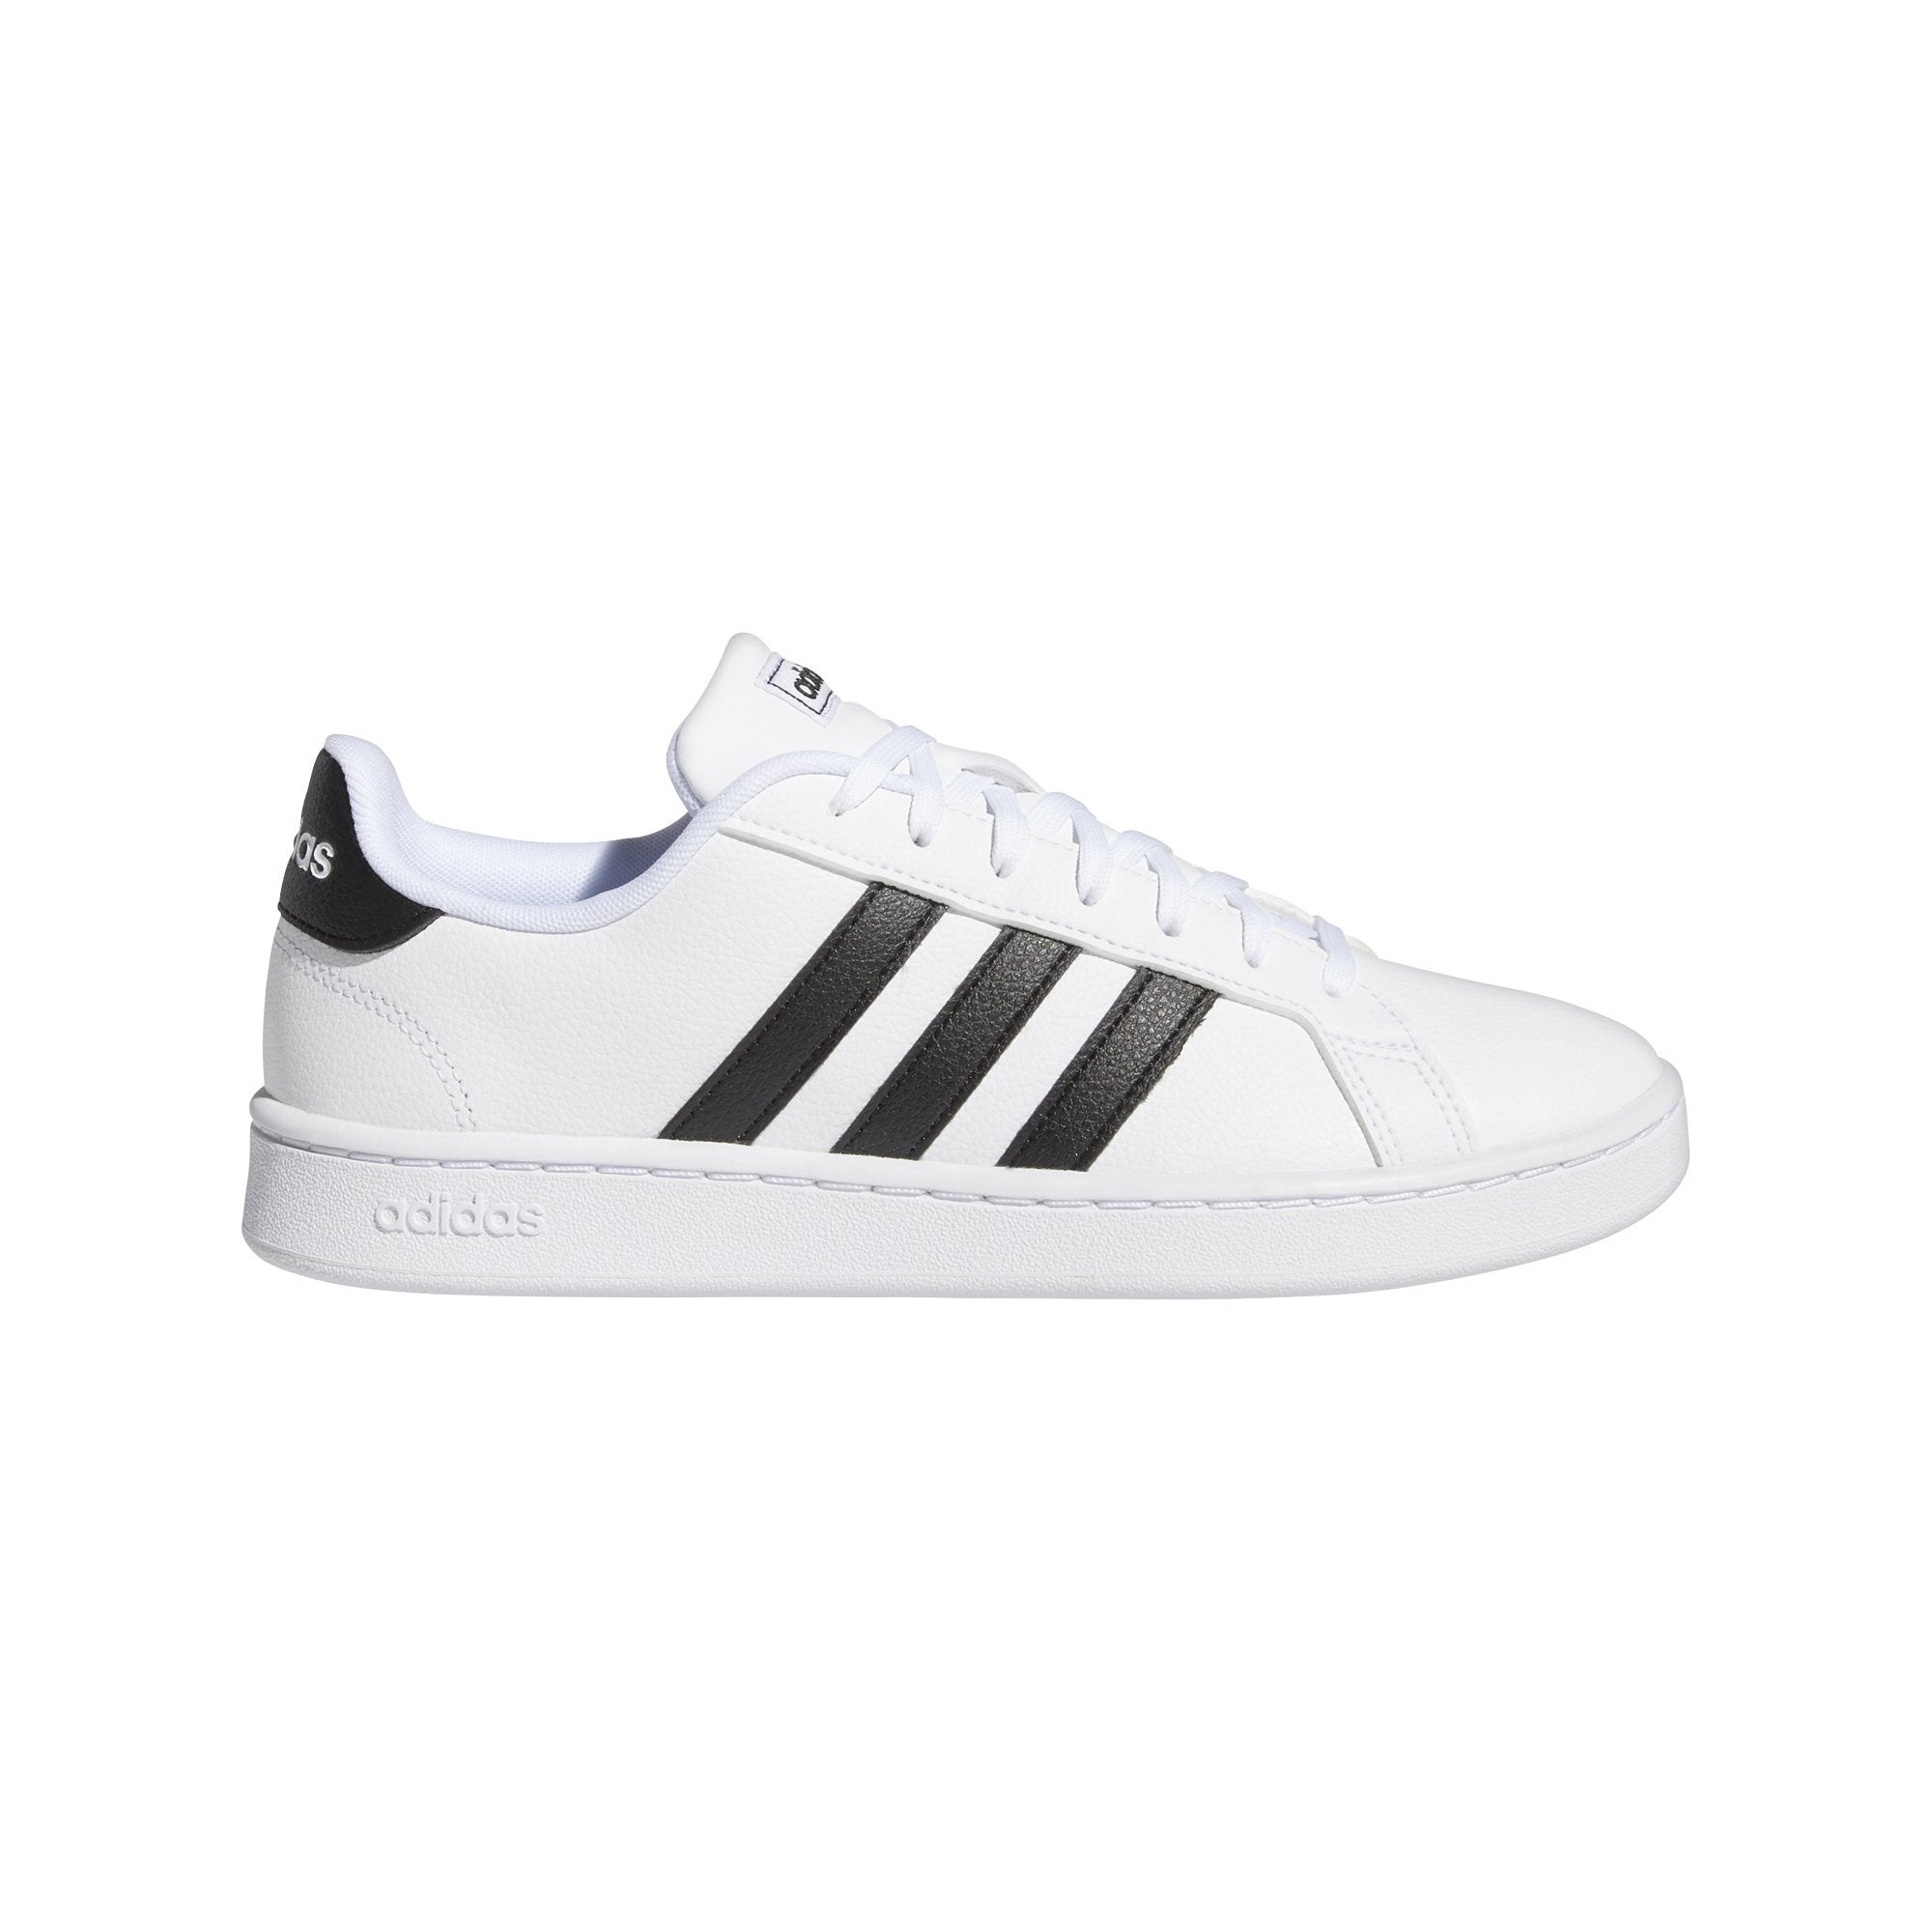 Adidas Womens Grand Court Shoes - Ftwr White/Core Black/Ftwr White SP-Footwear-Womens Adidas